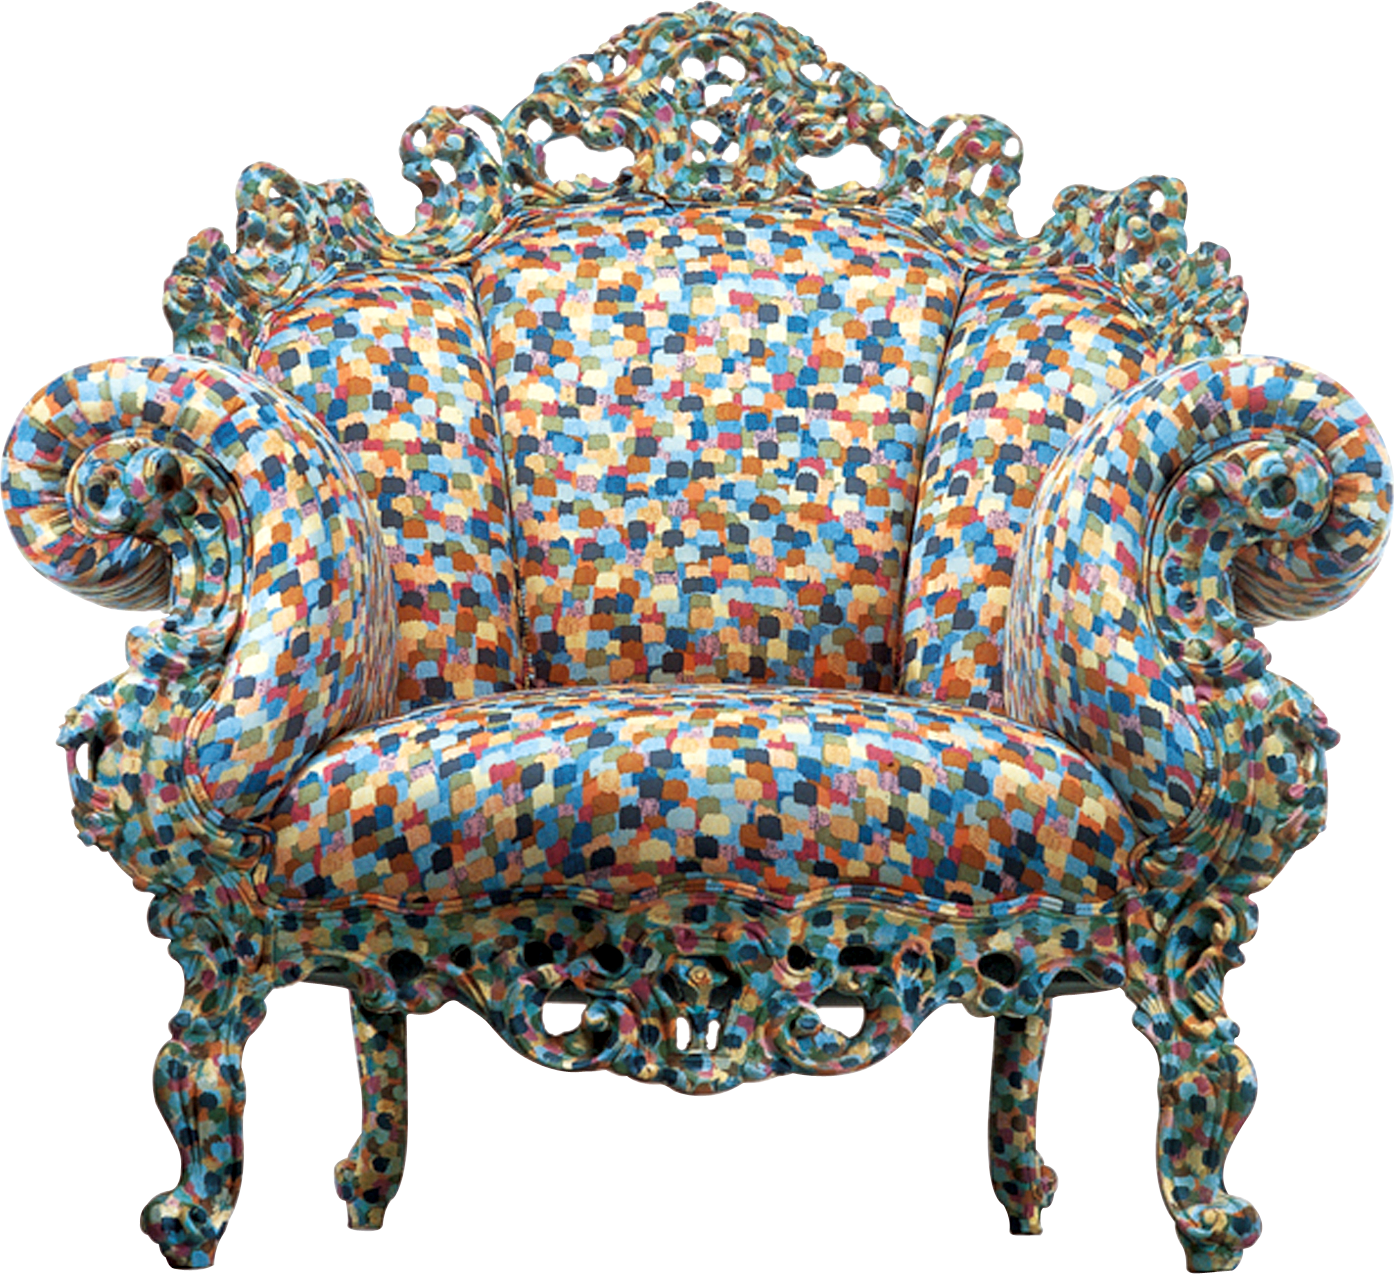 proust alessandro mendini cappellini armchair furniture patterned chair